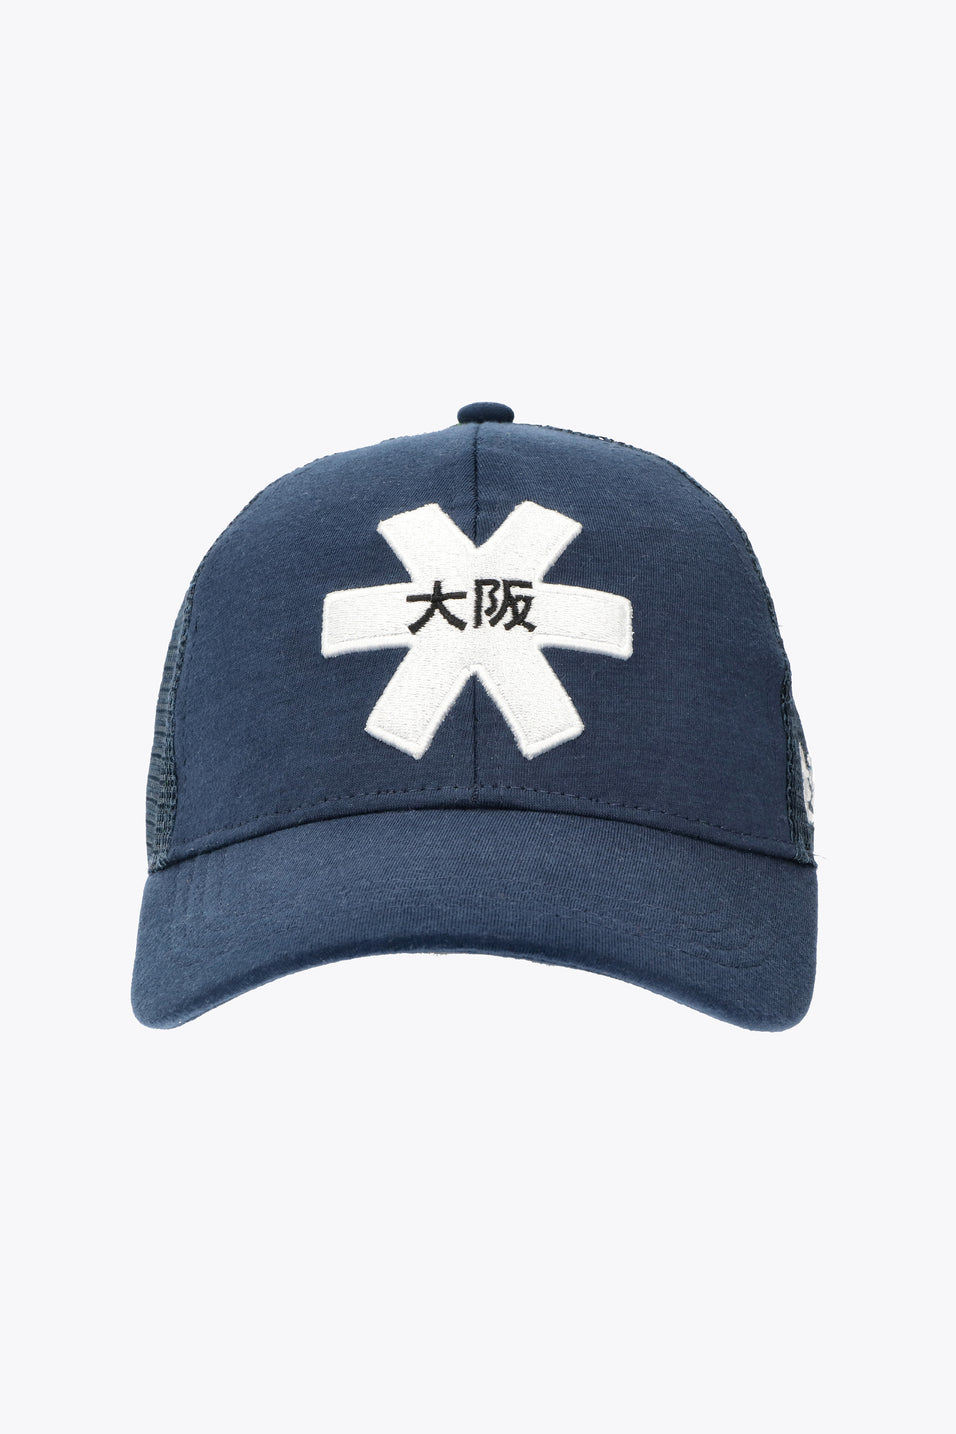 Osakaworld.com trucker caps